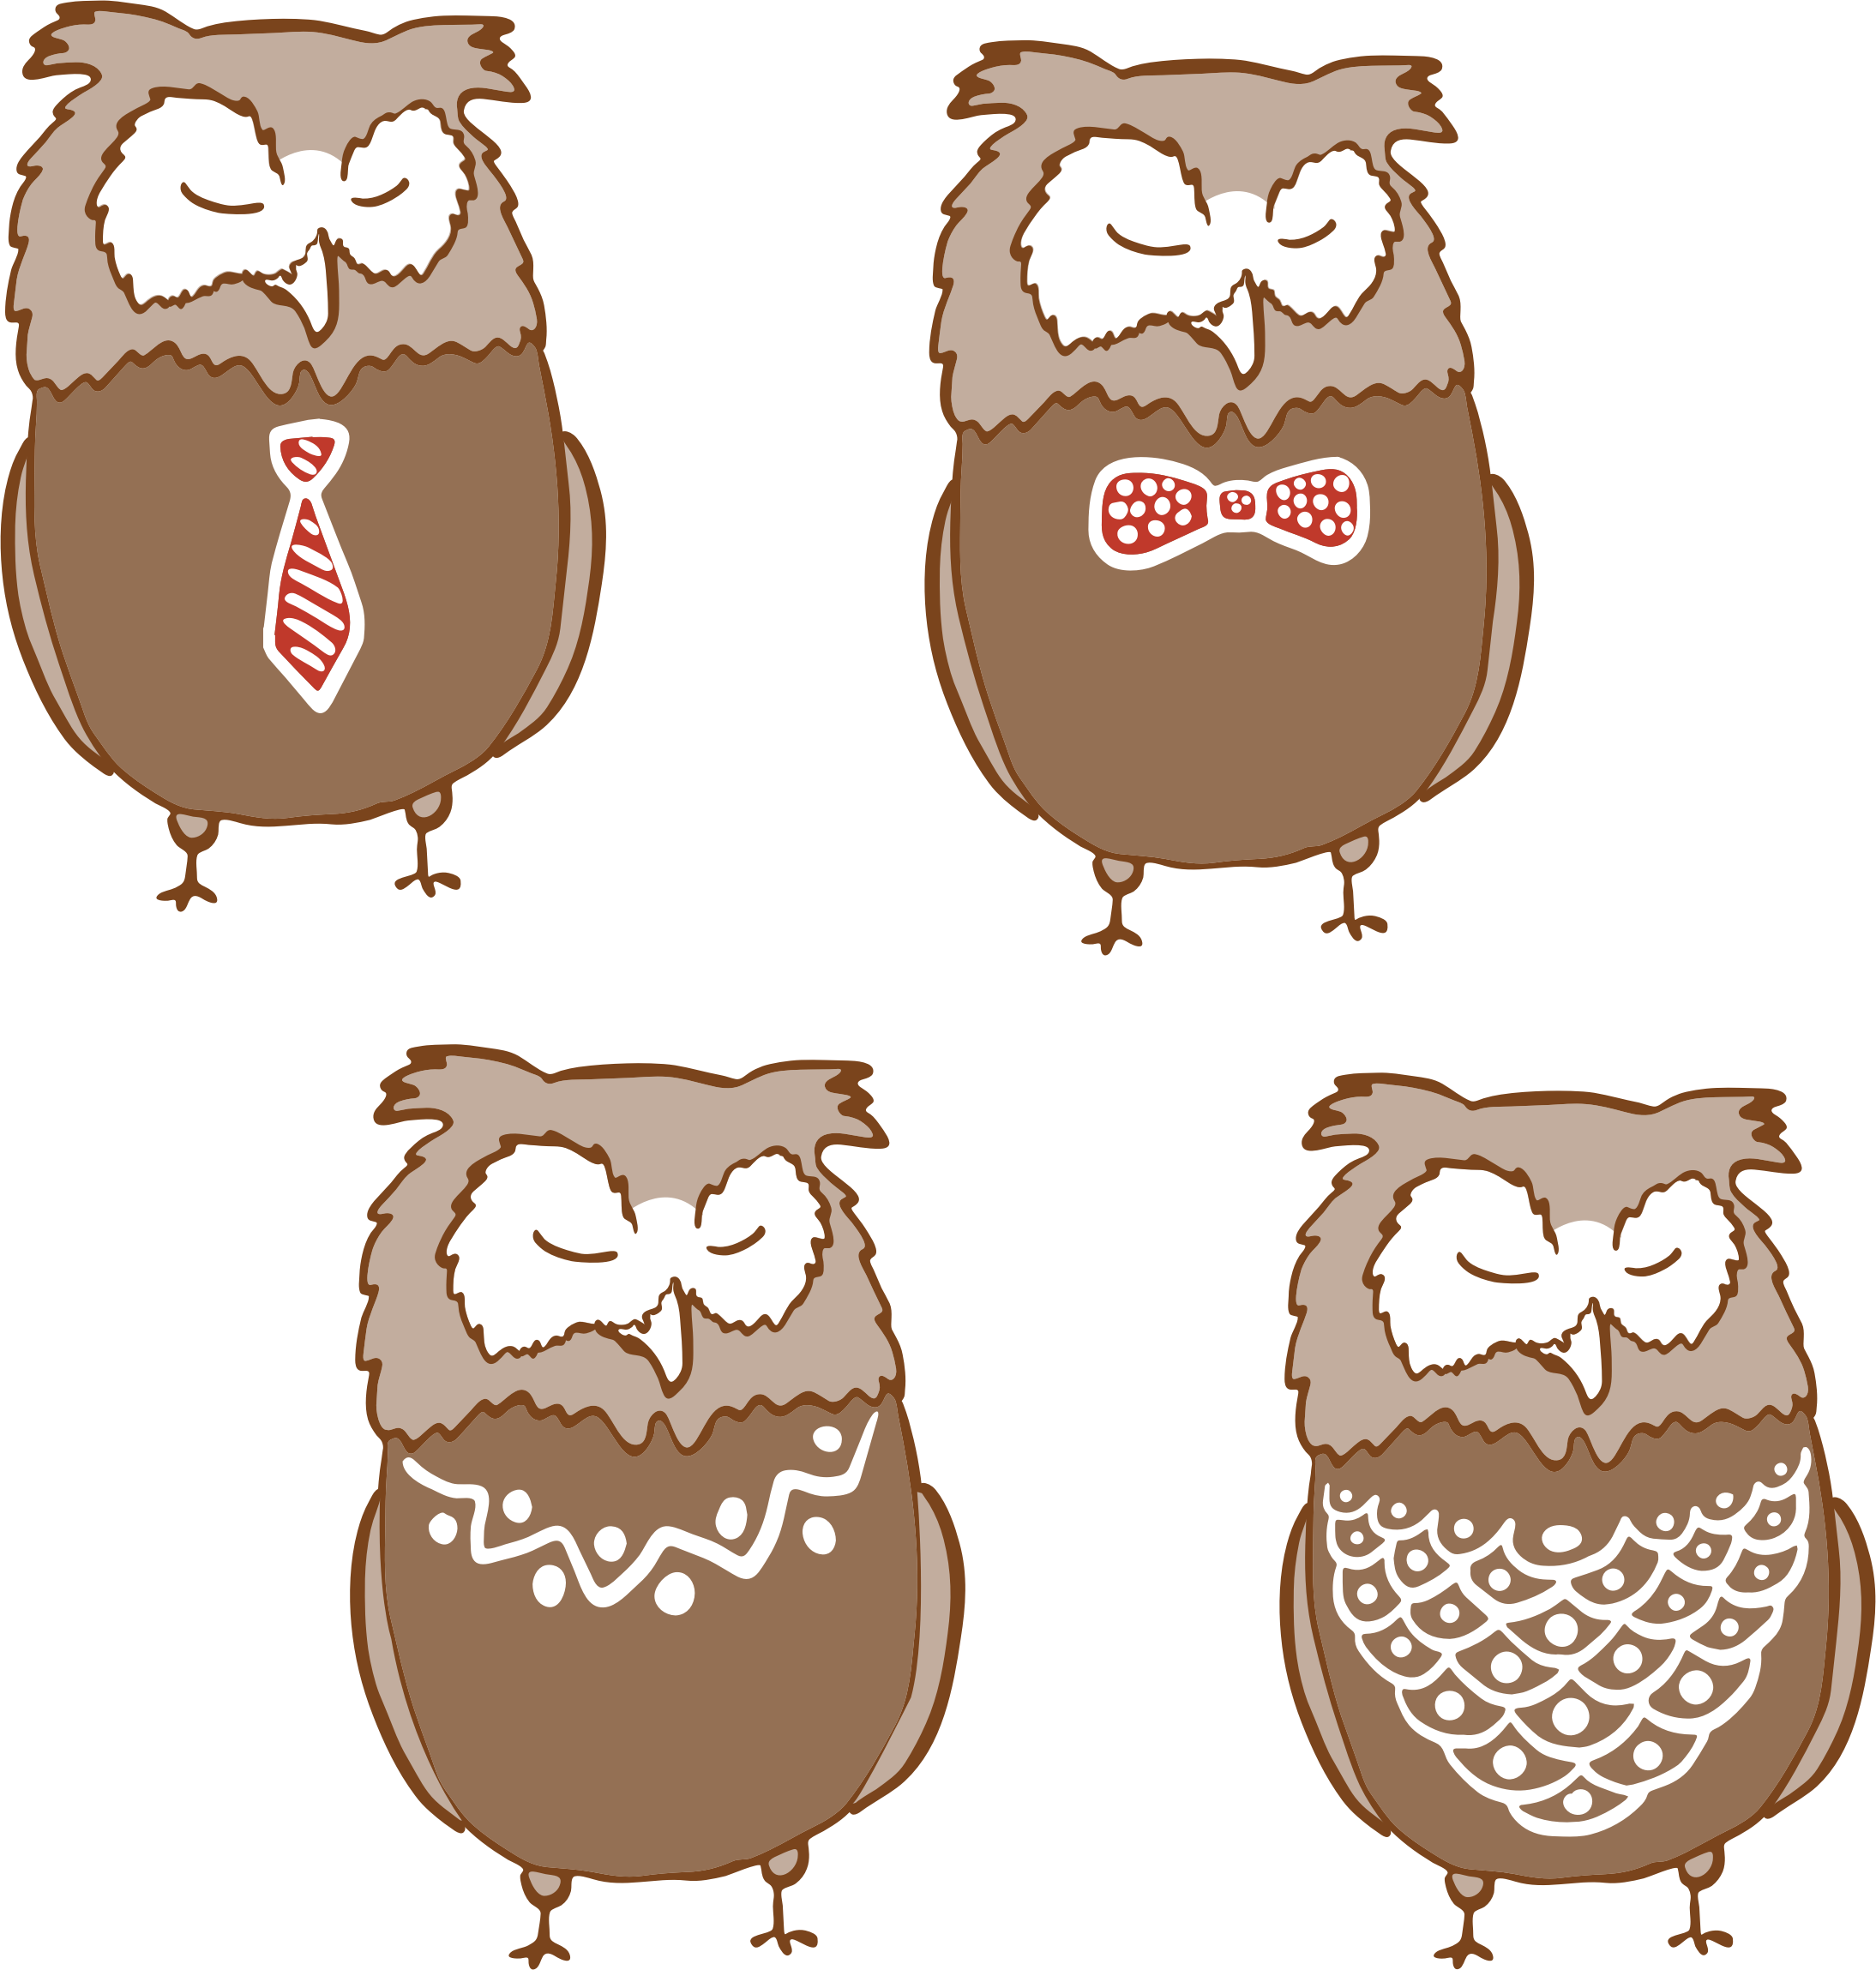 Anthropomorphic Owls 3 by GDJ